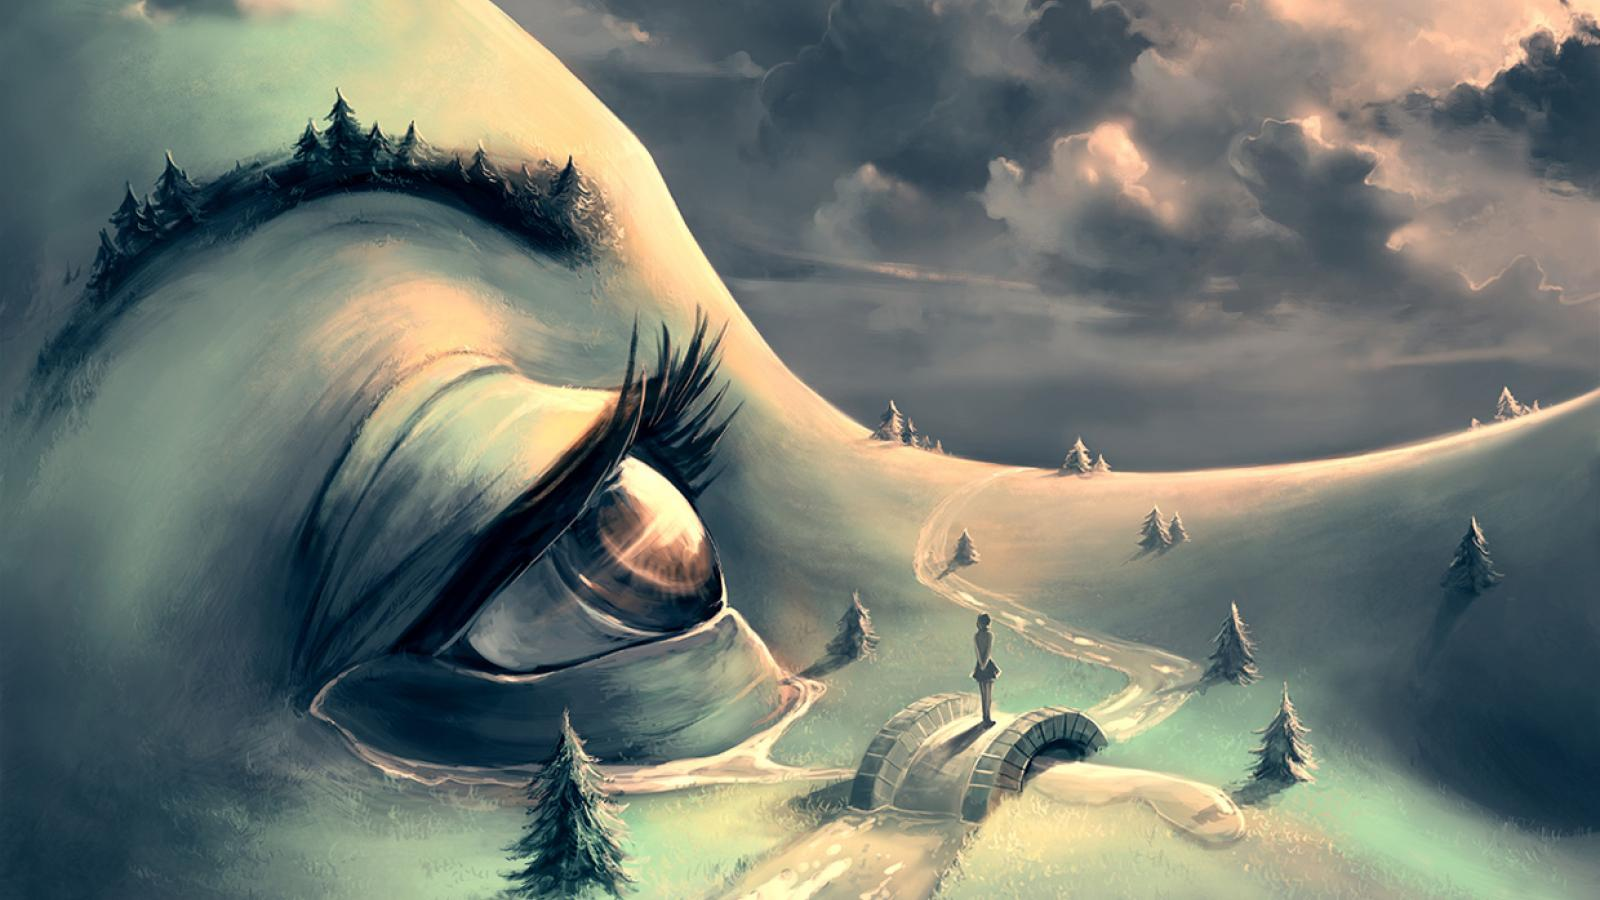 Digital Paintings by Cyril Rolando